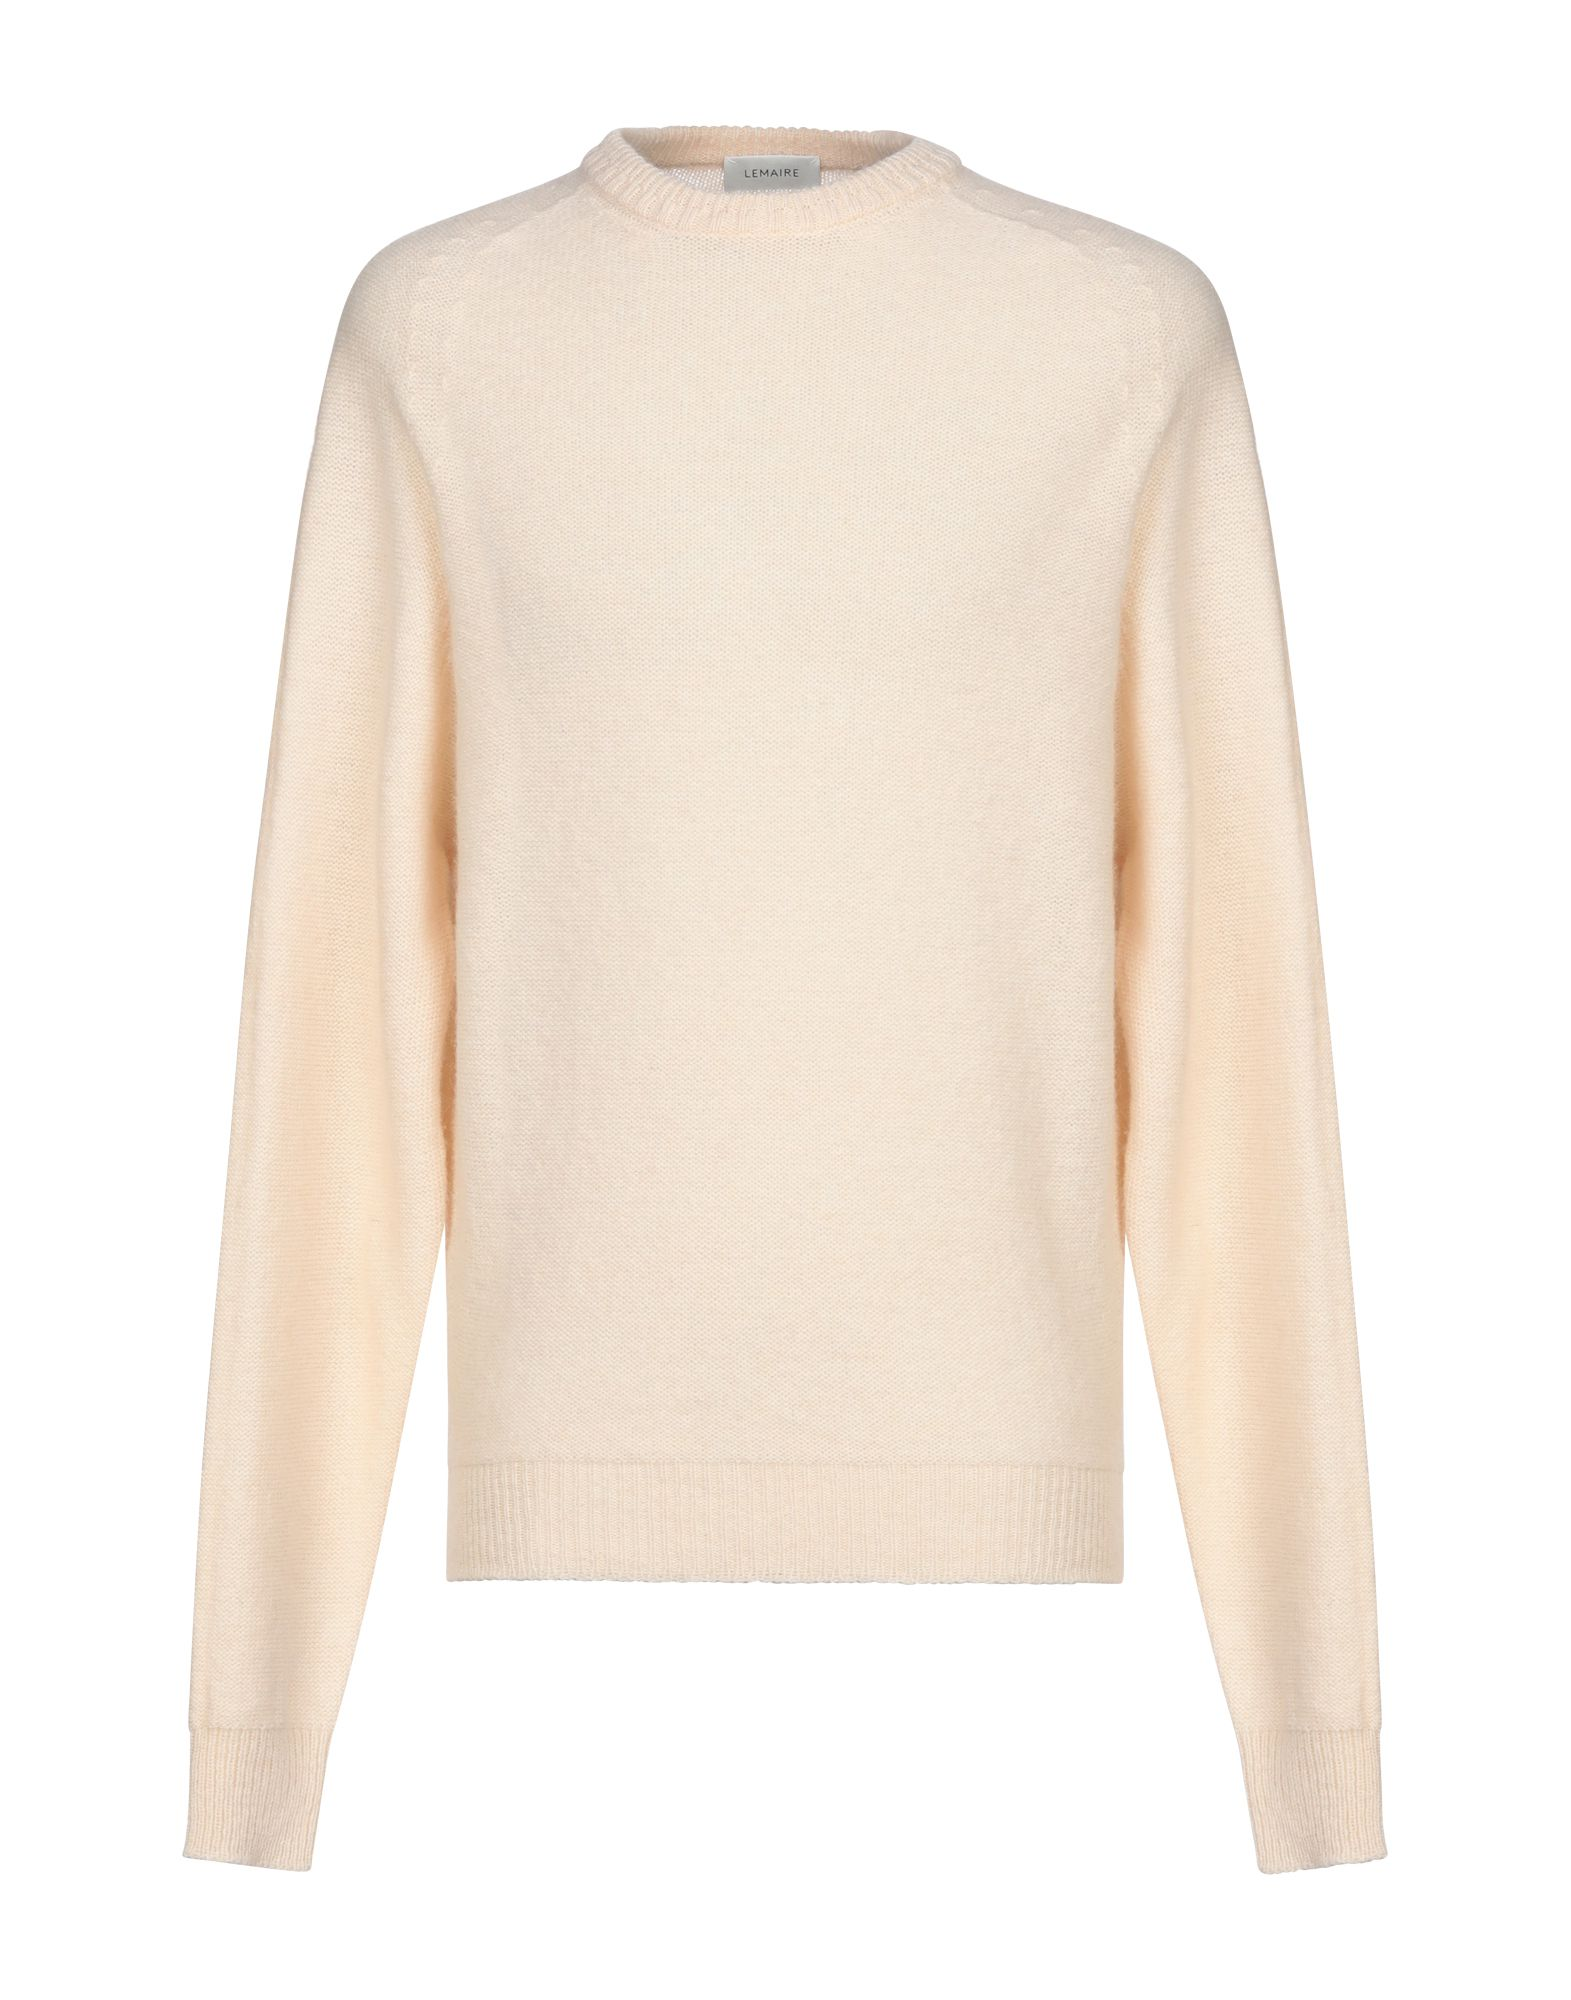 LEMAIRE | LEMAIRE Sweaters 39960253 | Goxip